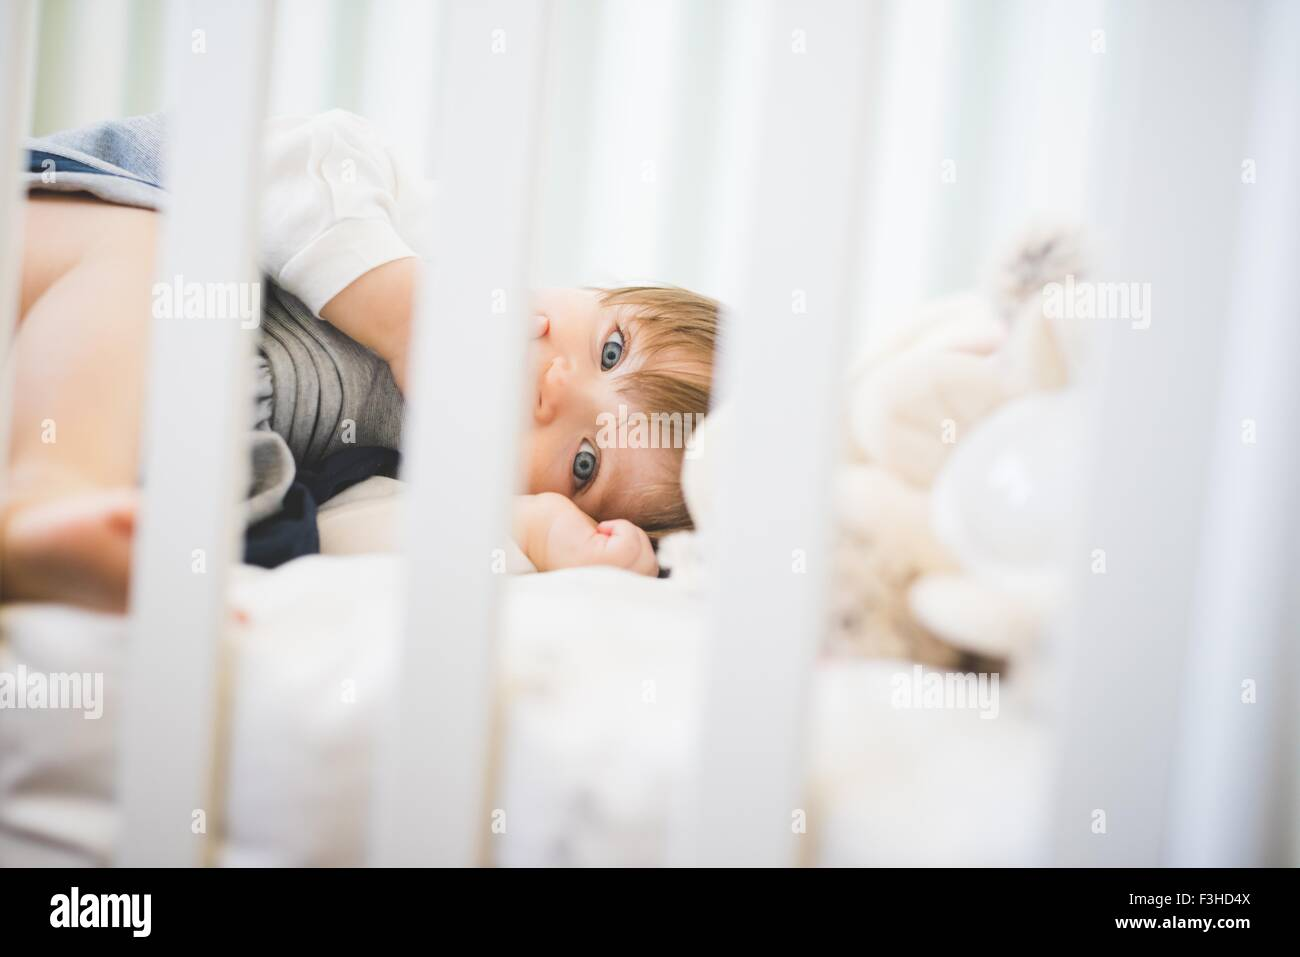 Female toddler lying in crib looking at camera - Stock Image